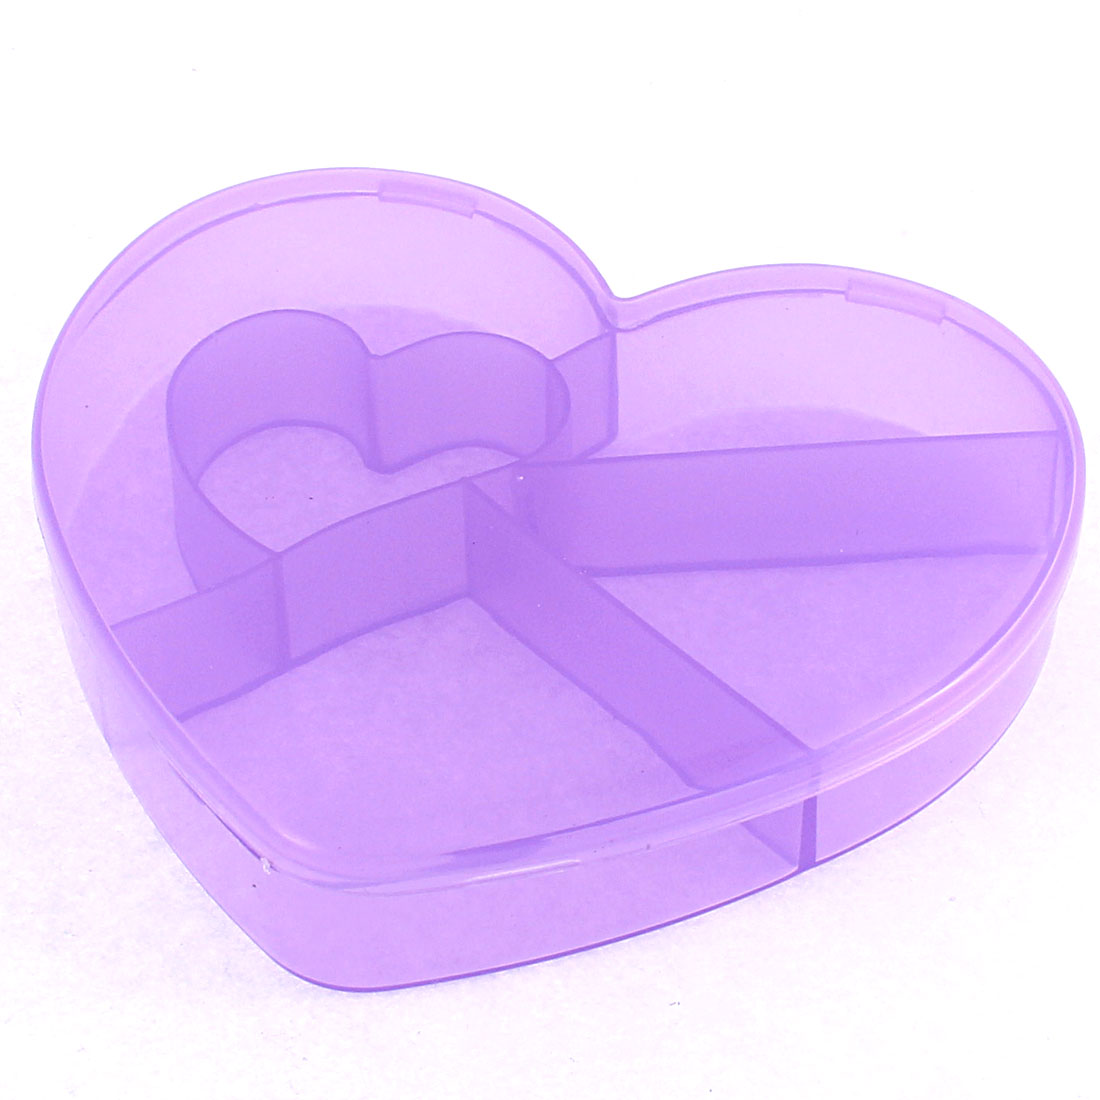 Medicine Heart Shaped 5 Slots Storage Box Case Organizer Container Clear Purple